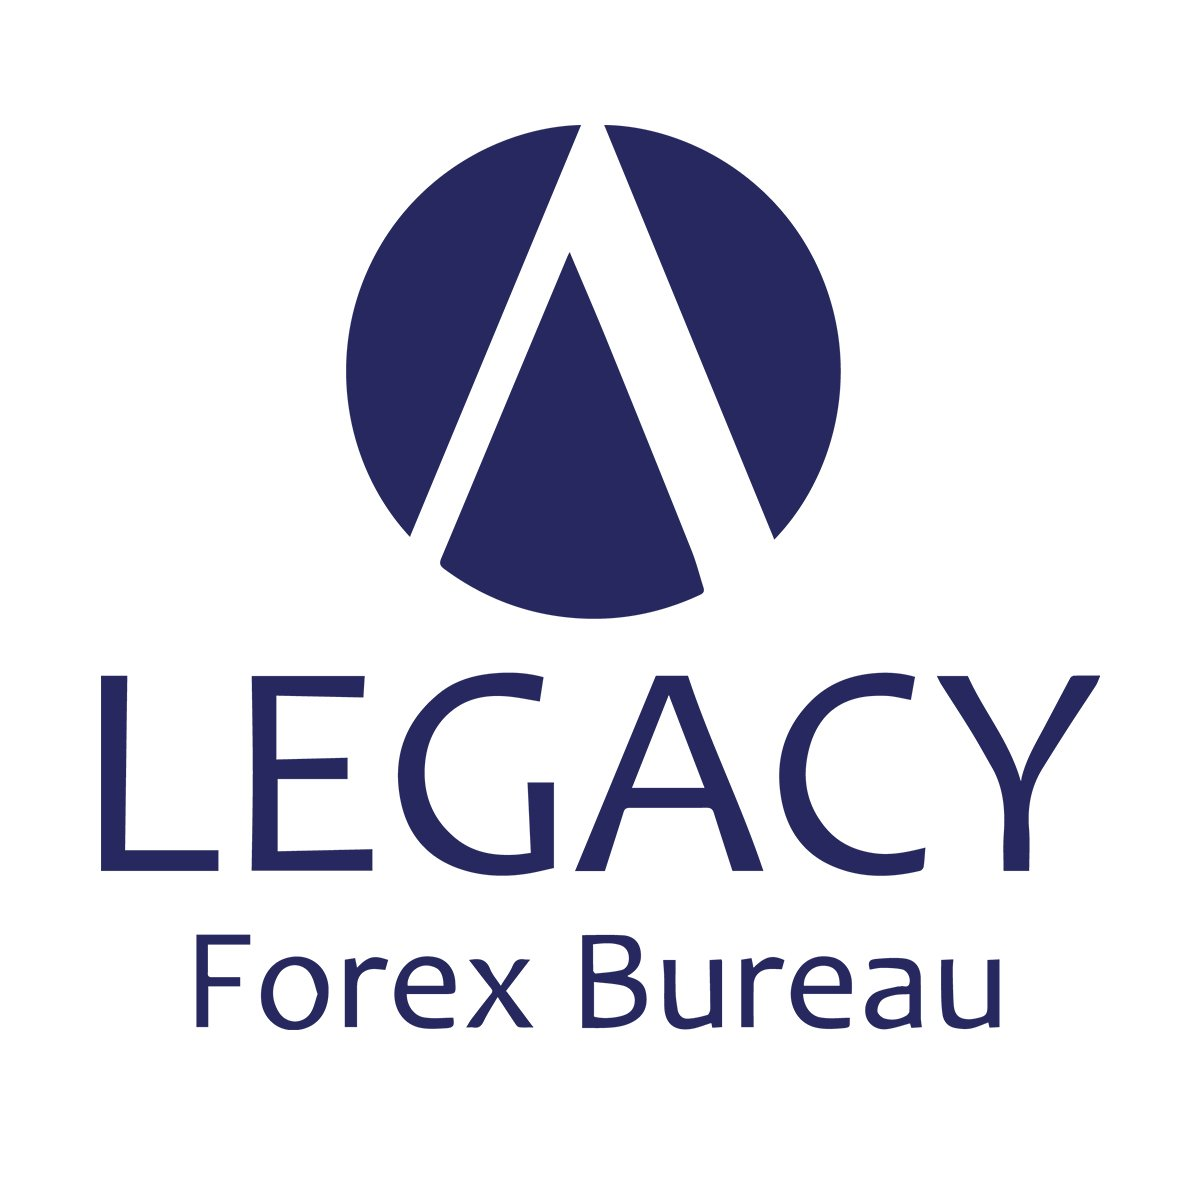 Best forex bureau in kenya